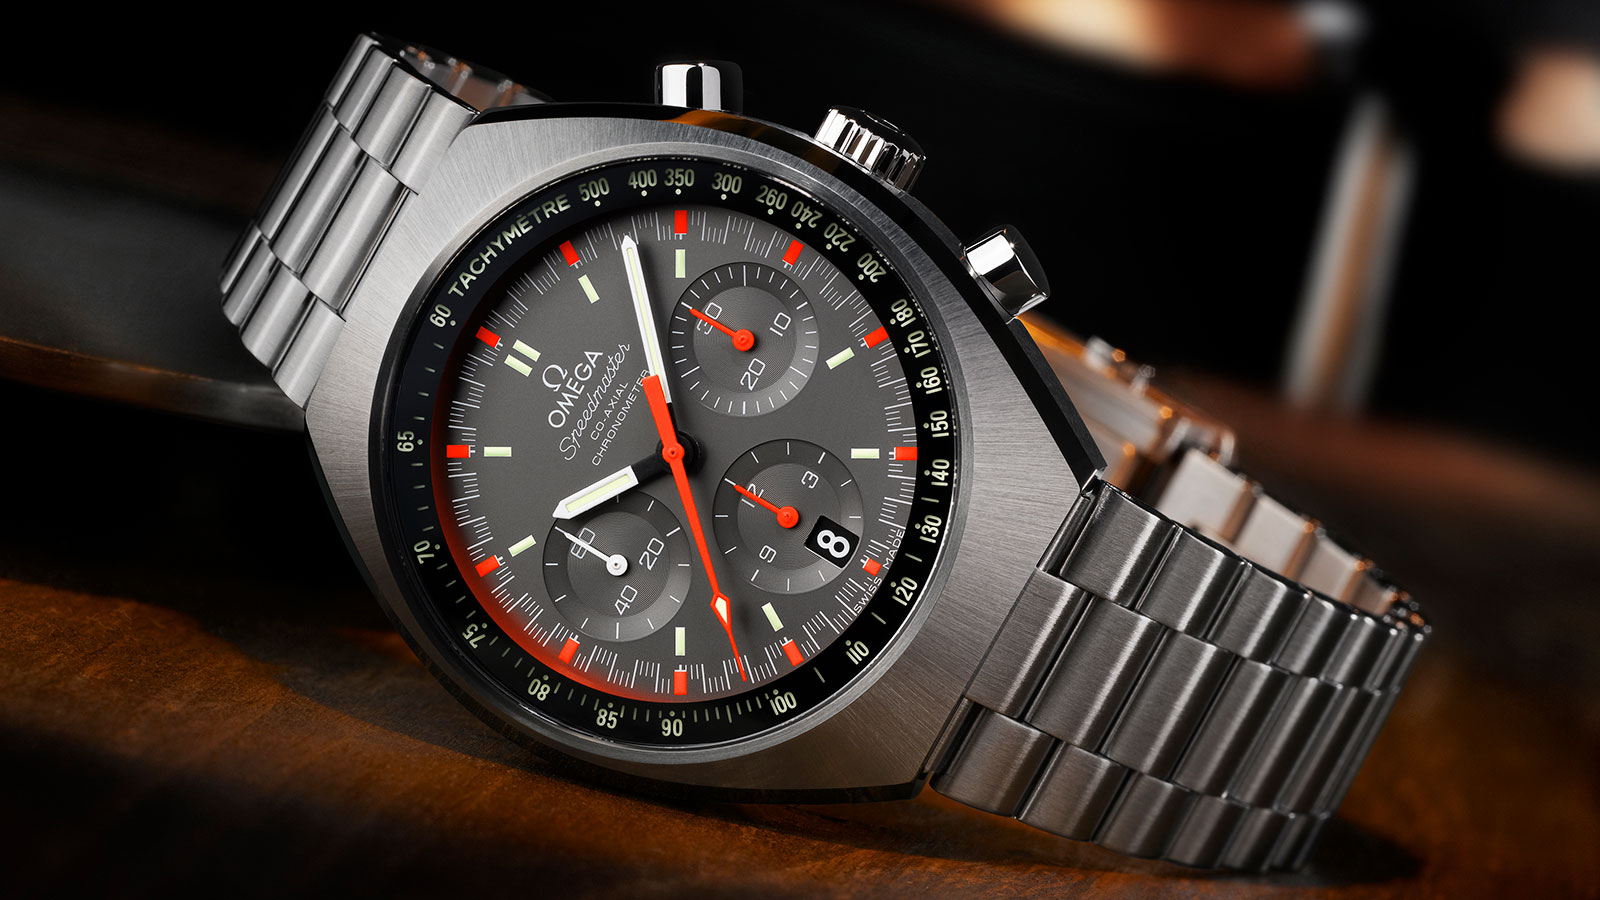 Speedmaster MARK II腕表 Mark II腕表 42.4 x 46.2毫米同轴计时表 腕表 - 327.10.43.50.06.001